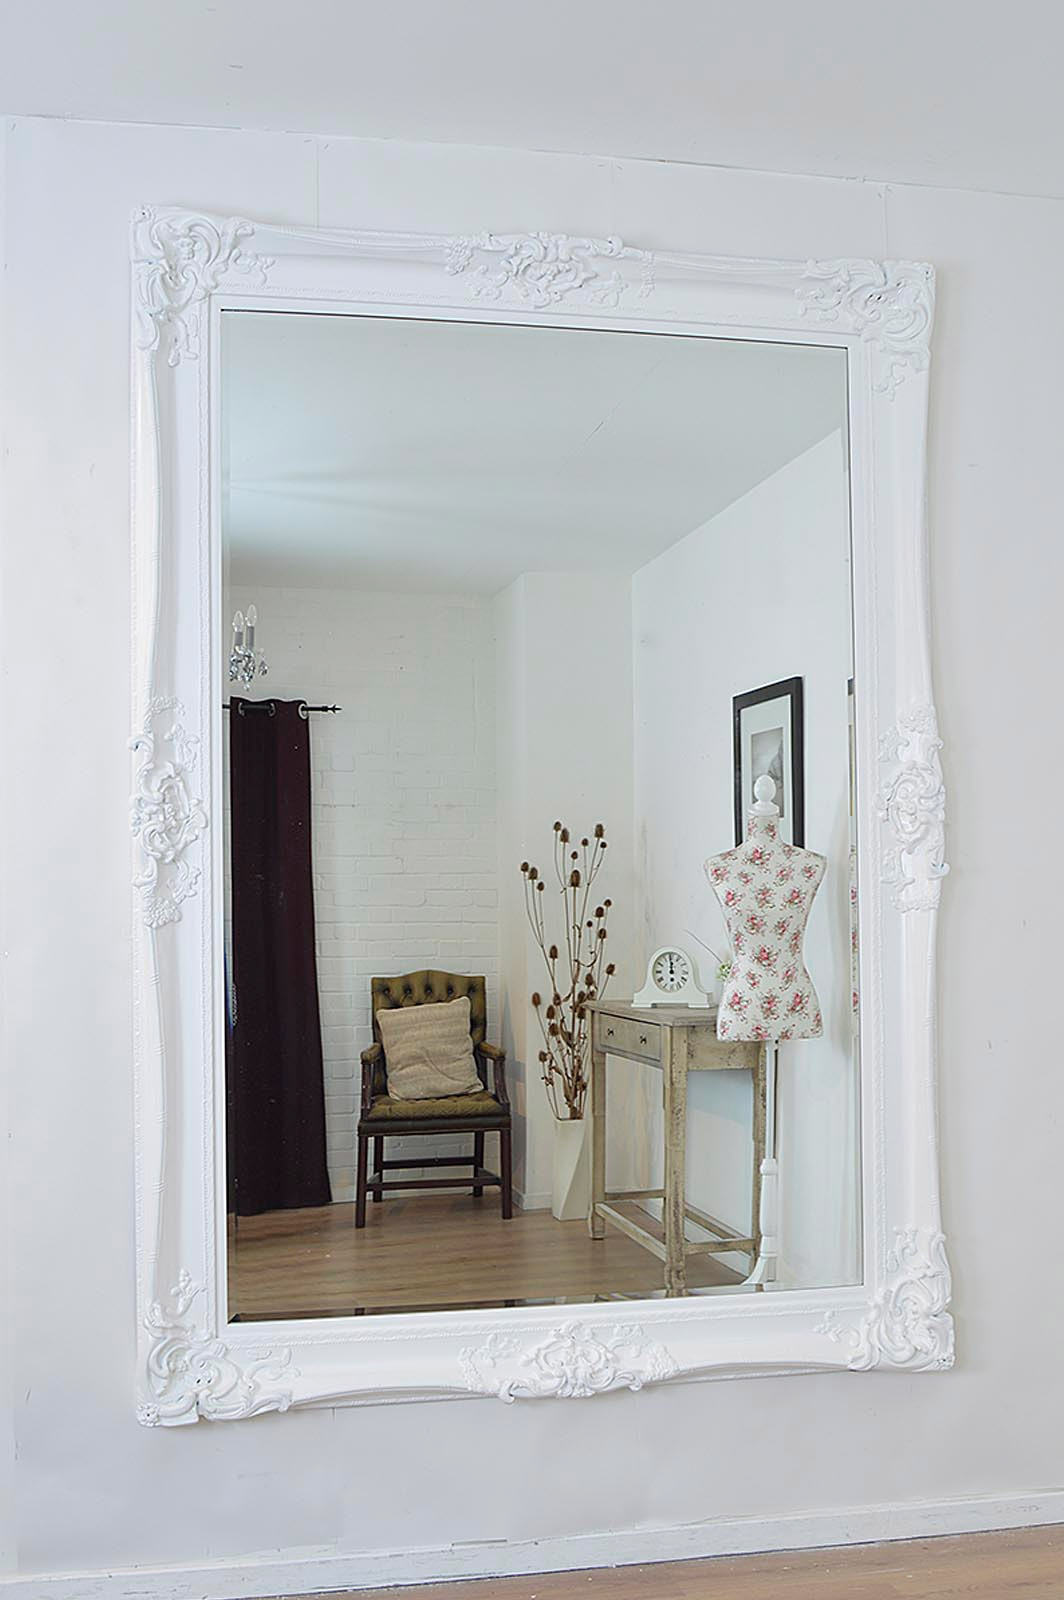 Large White Ornate Framed Wall Mirror 213cm X 152cm Large For Large White Ornate Mirror (Image 12 of 15)